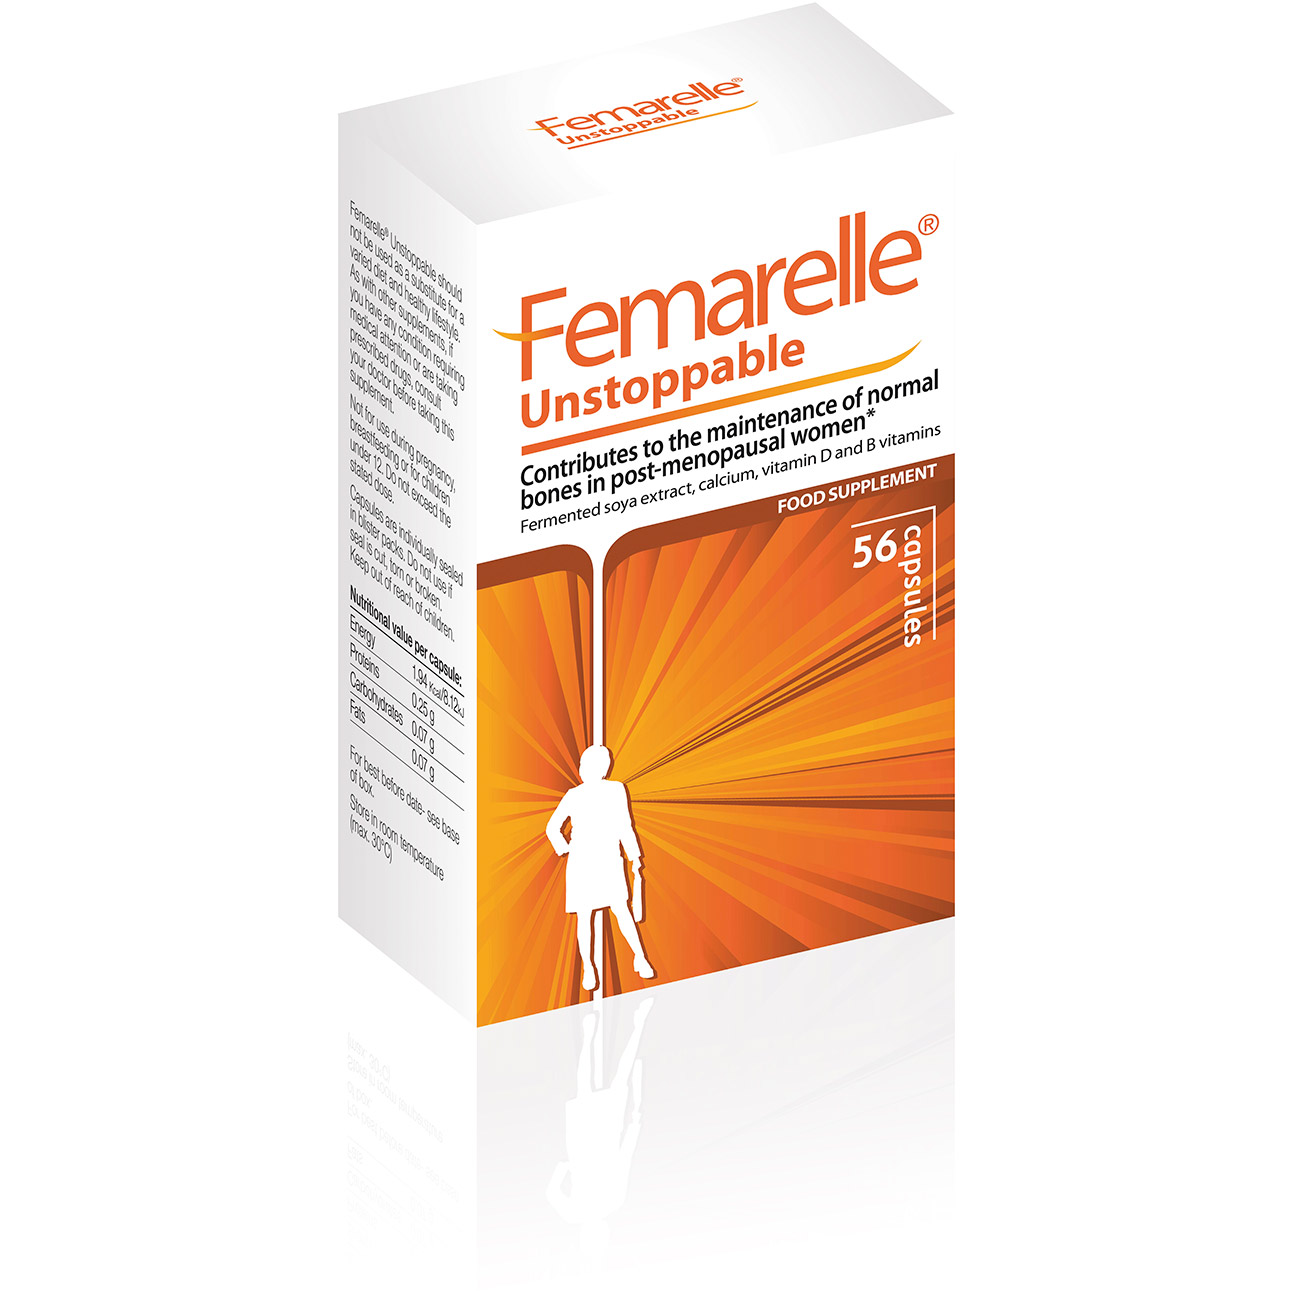 Box Femarlle Unstoppable Big (2)@1x